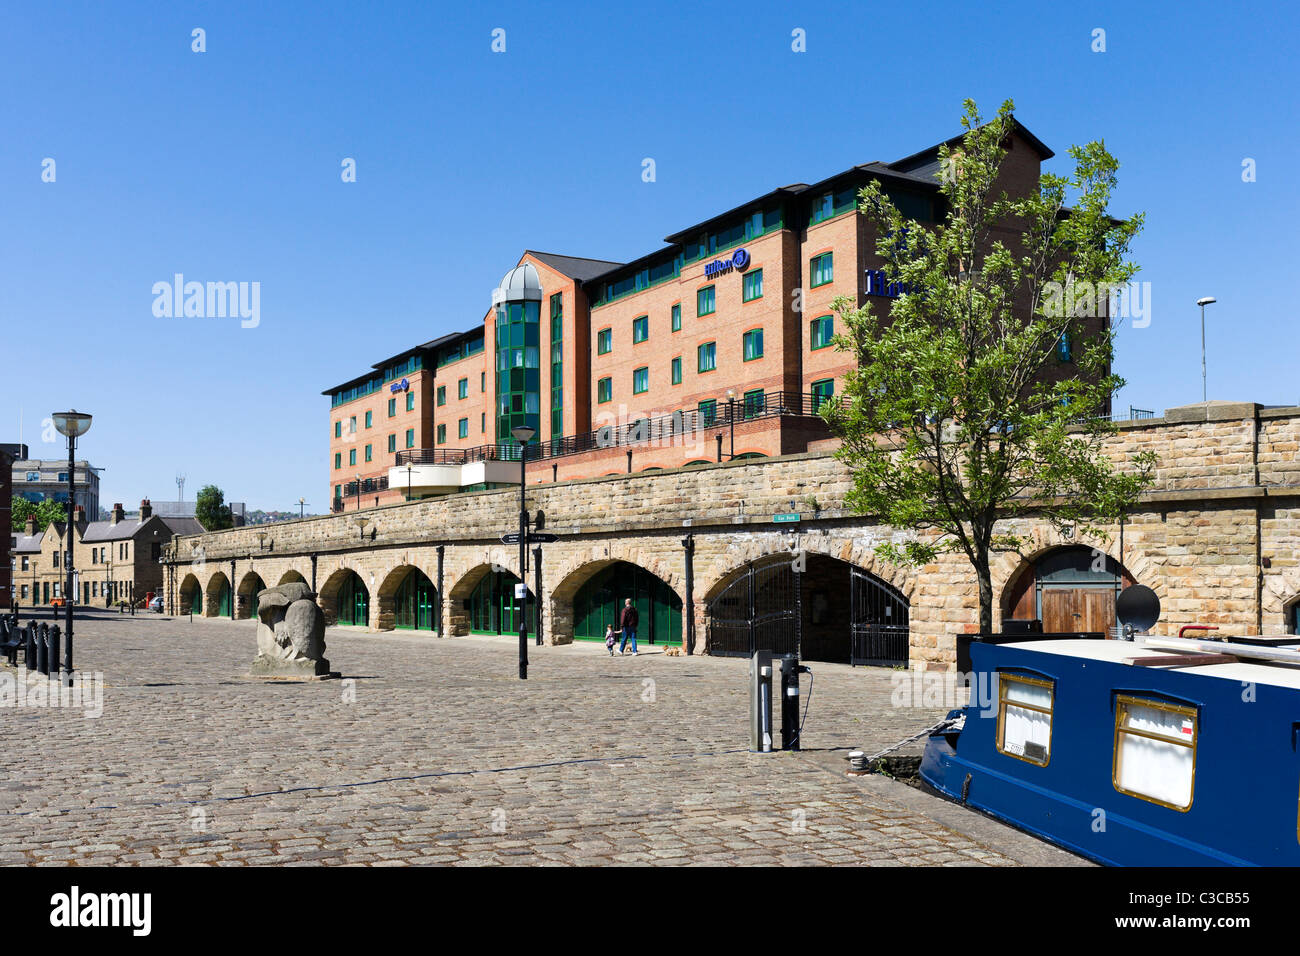 The Hilton Hotel in Victoria Quays, Sheffield, South Yorkshire, UK - Stock Image